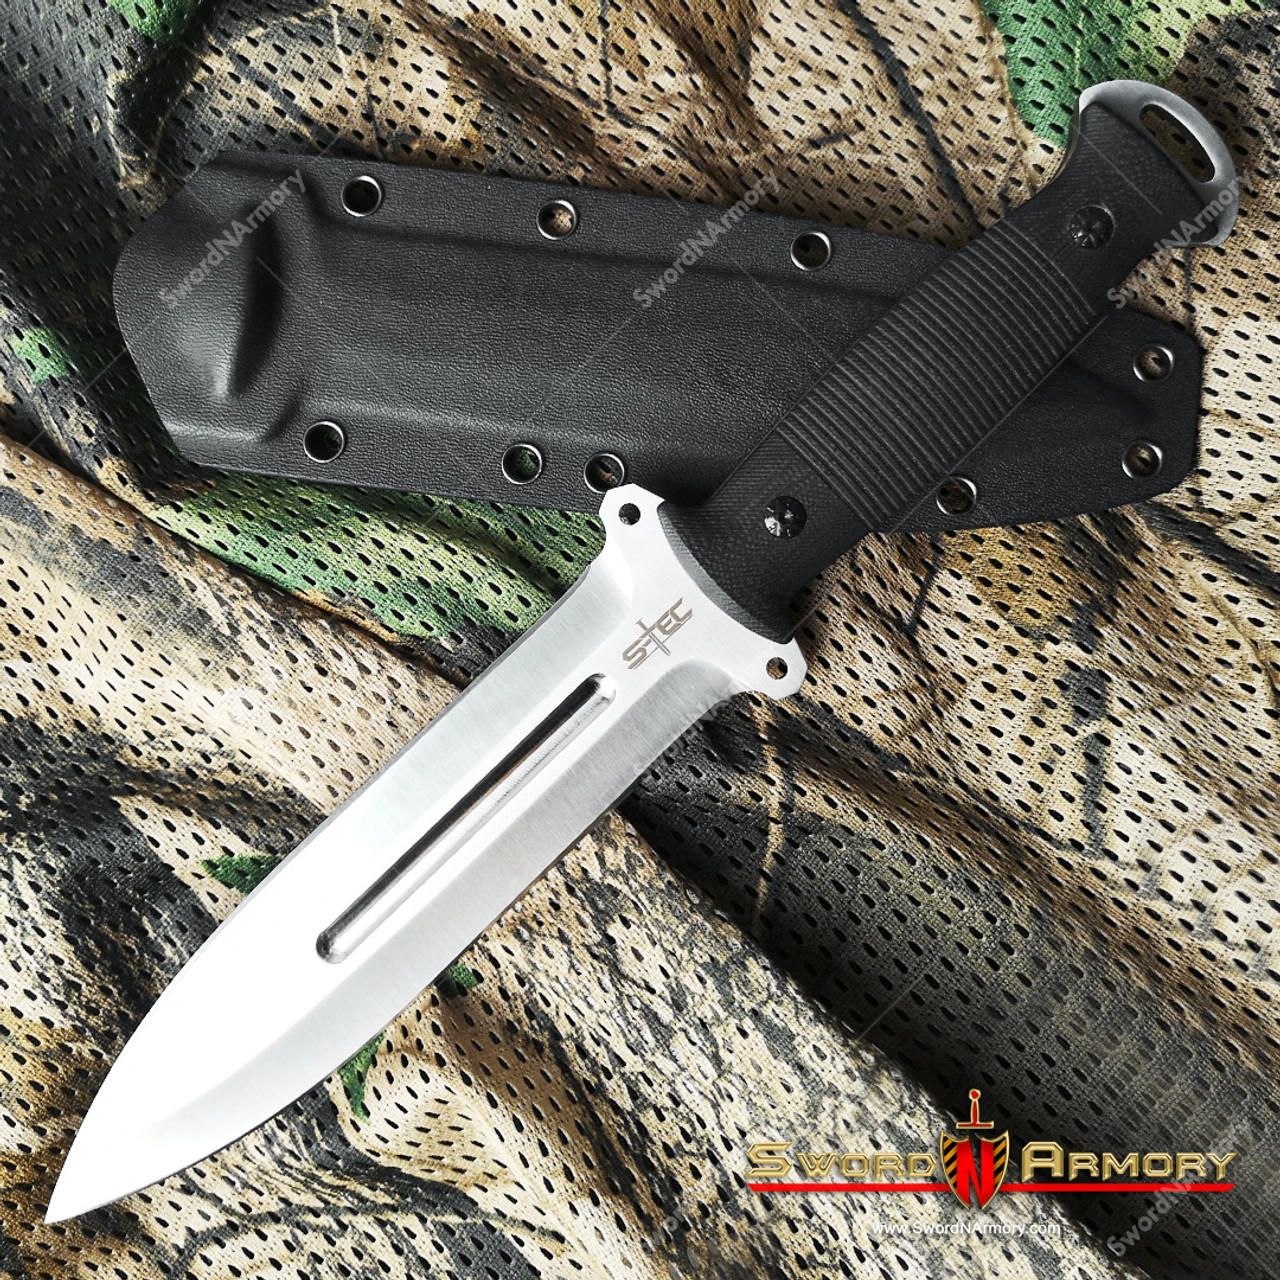 12 tactical combat knife 8cr13mov steel fixed blade g10 handle